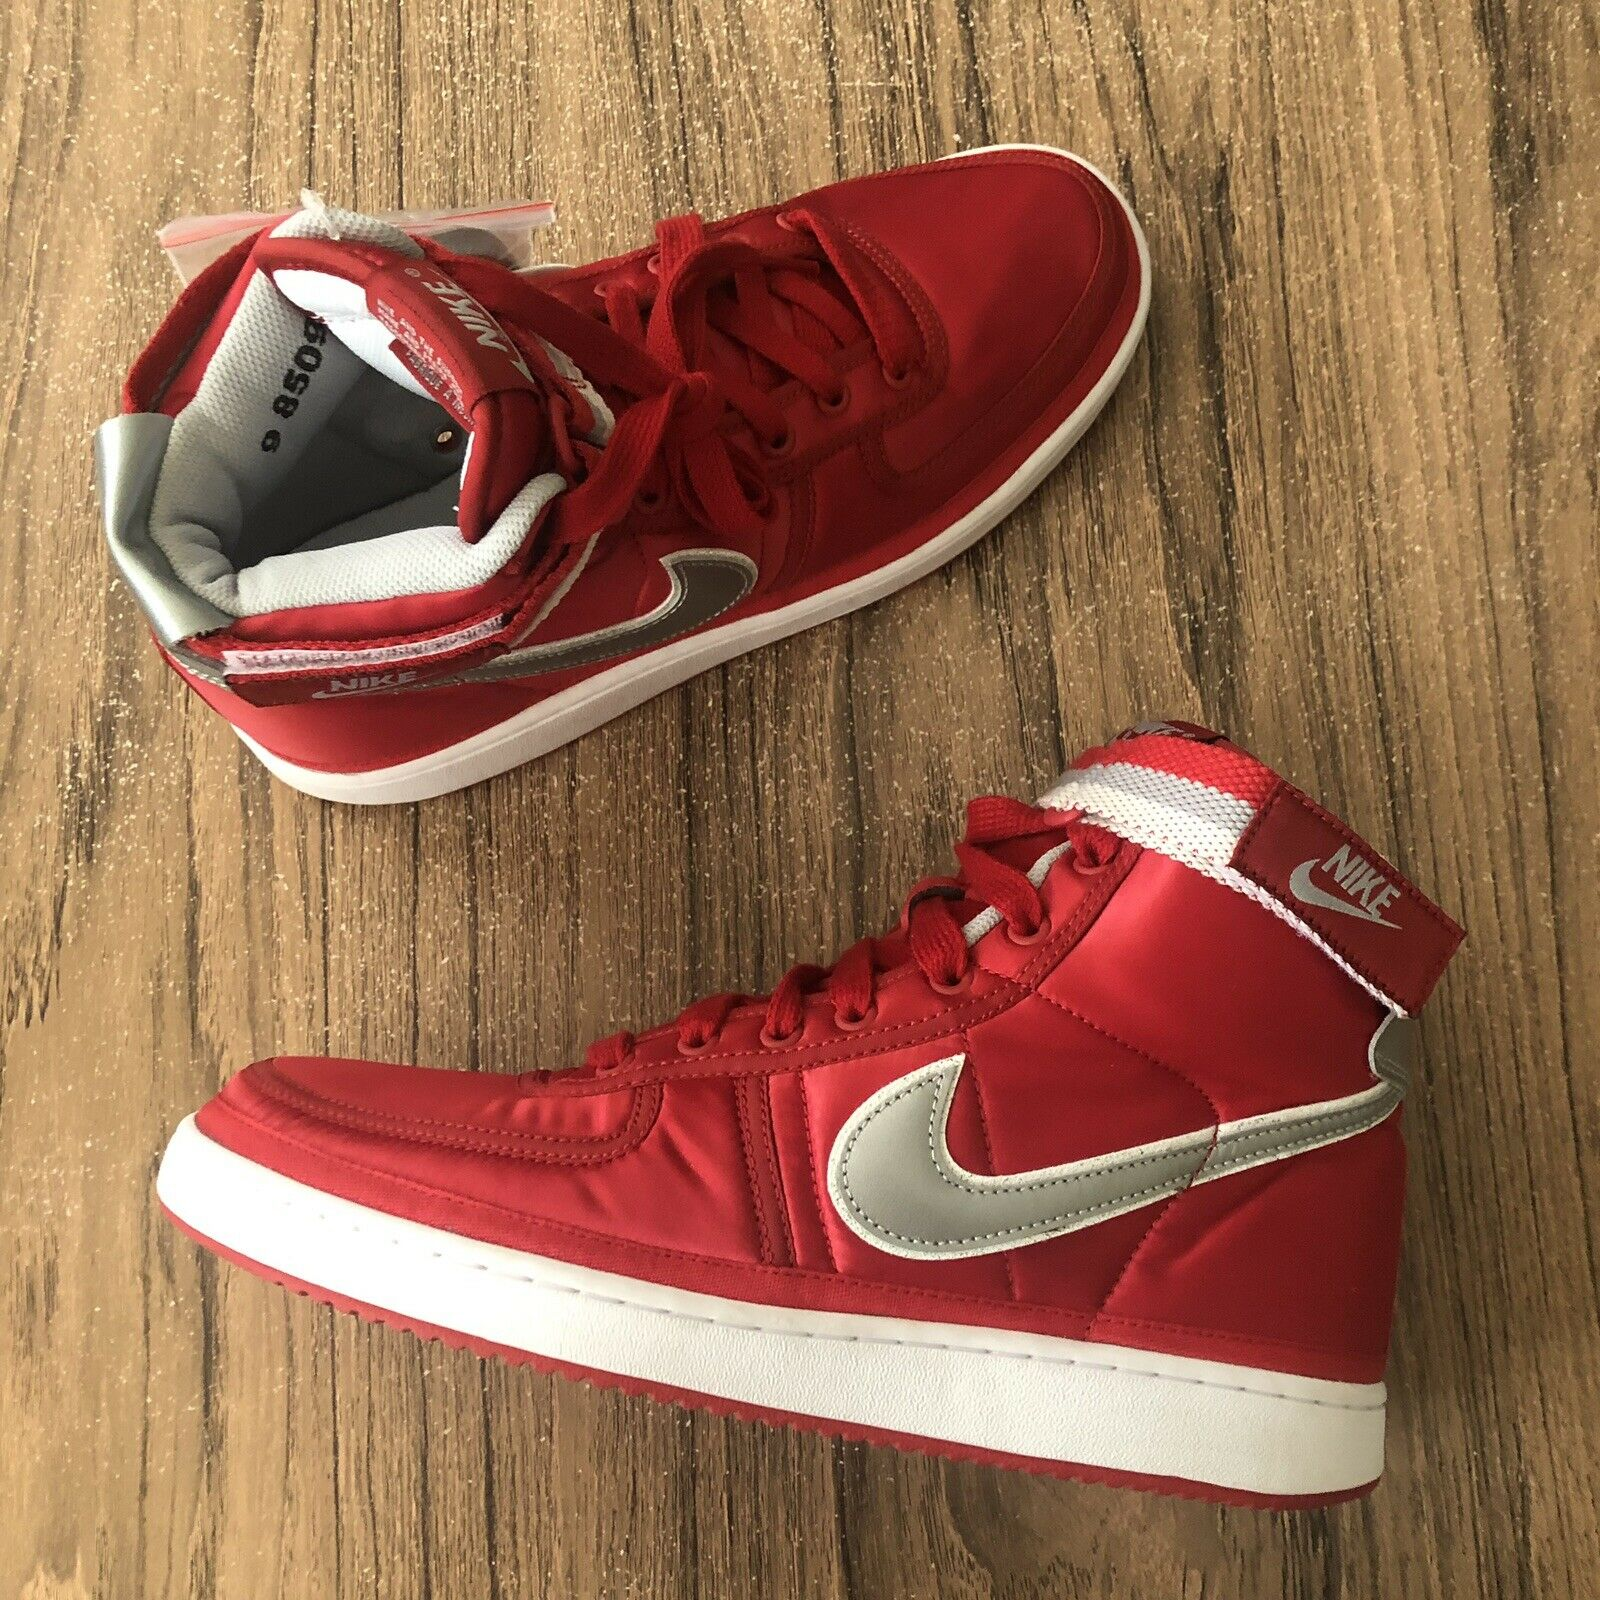 A1129G Nike Vandal High Supreme QS Red Silver AH8652-600 Men's Size 9 NEW